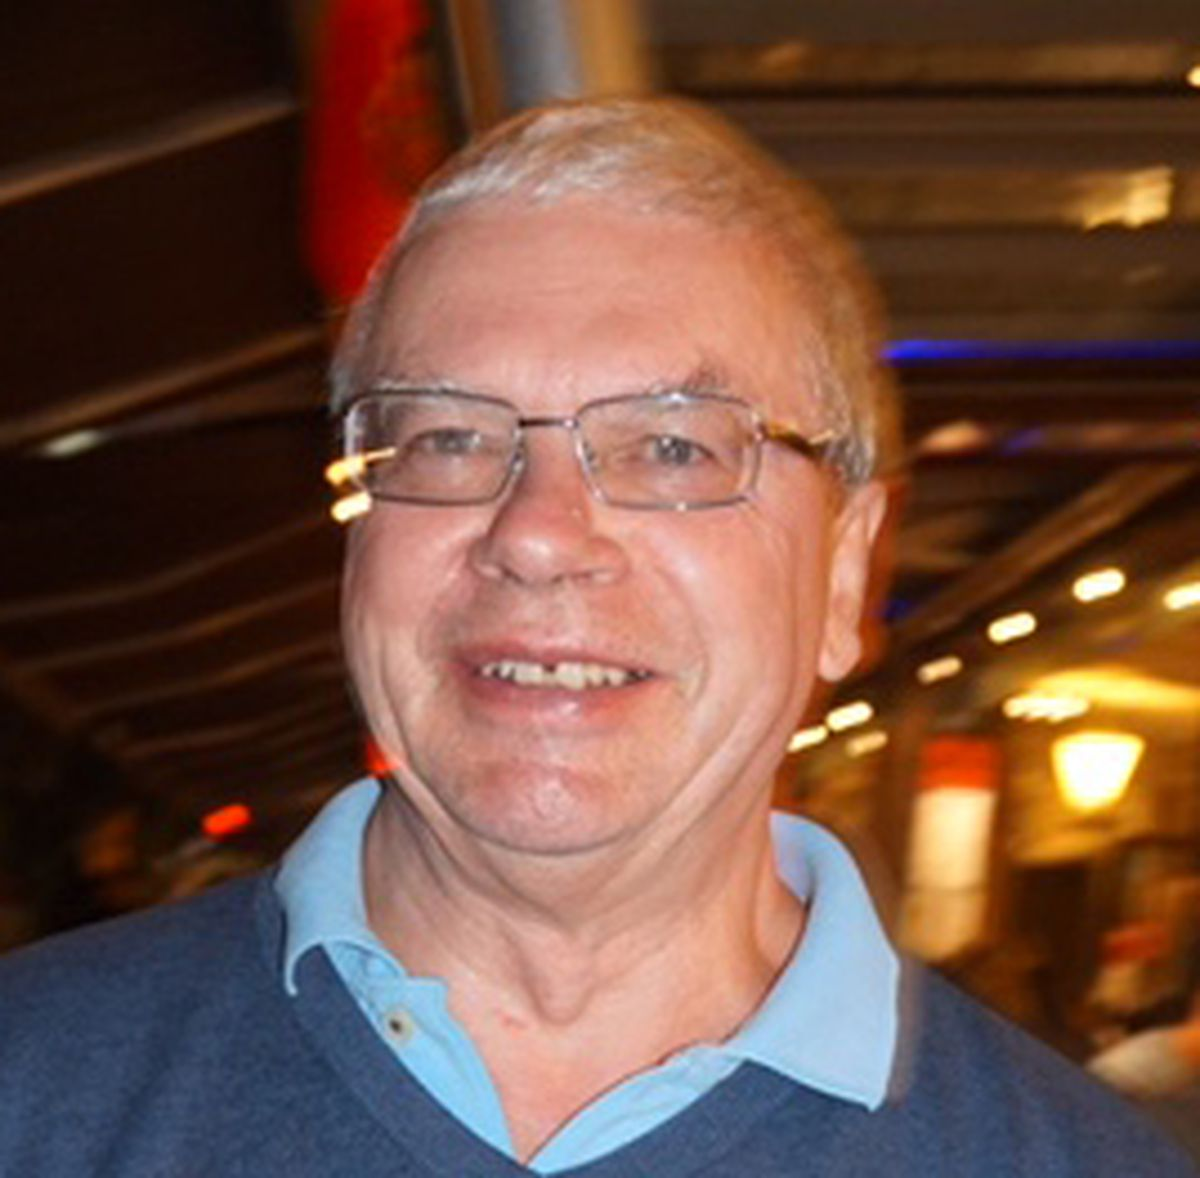 Club chairman Andy Wright